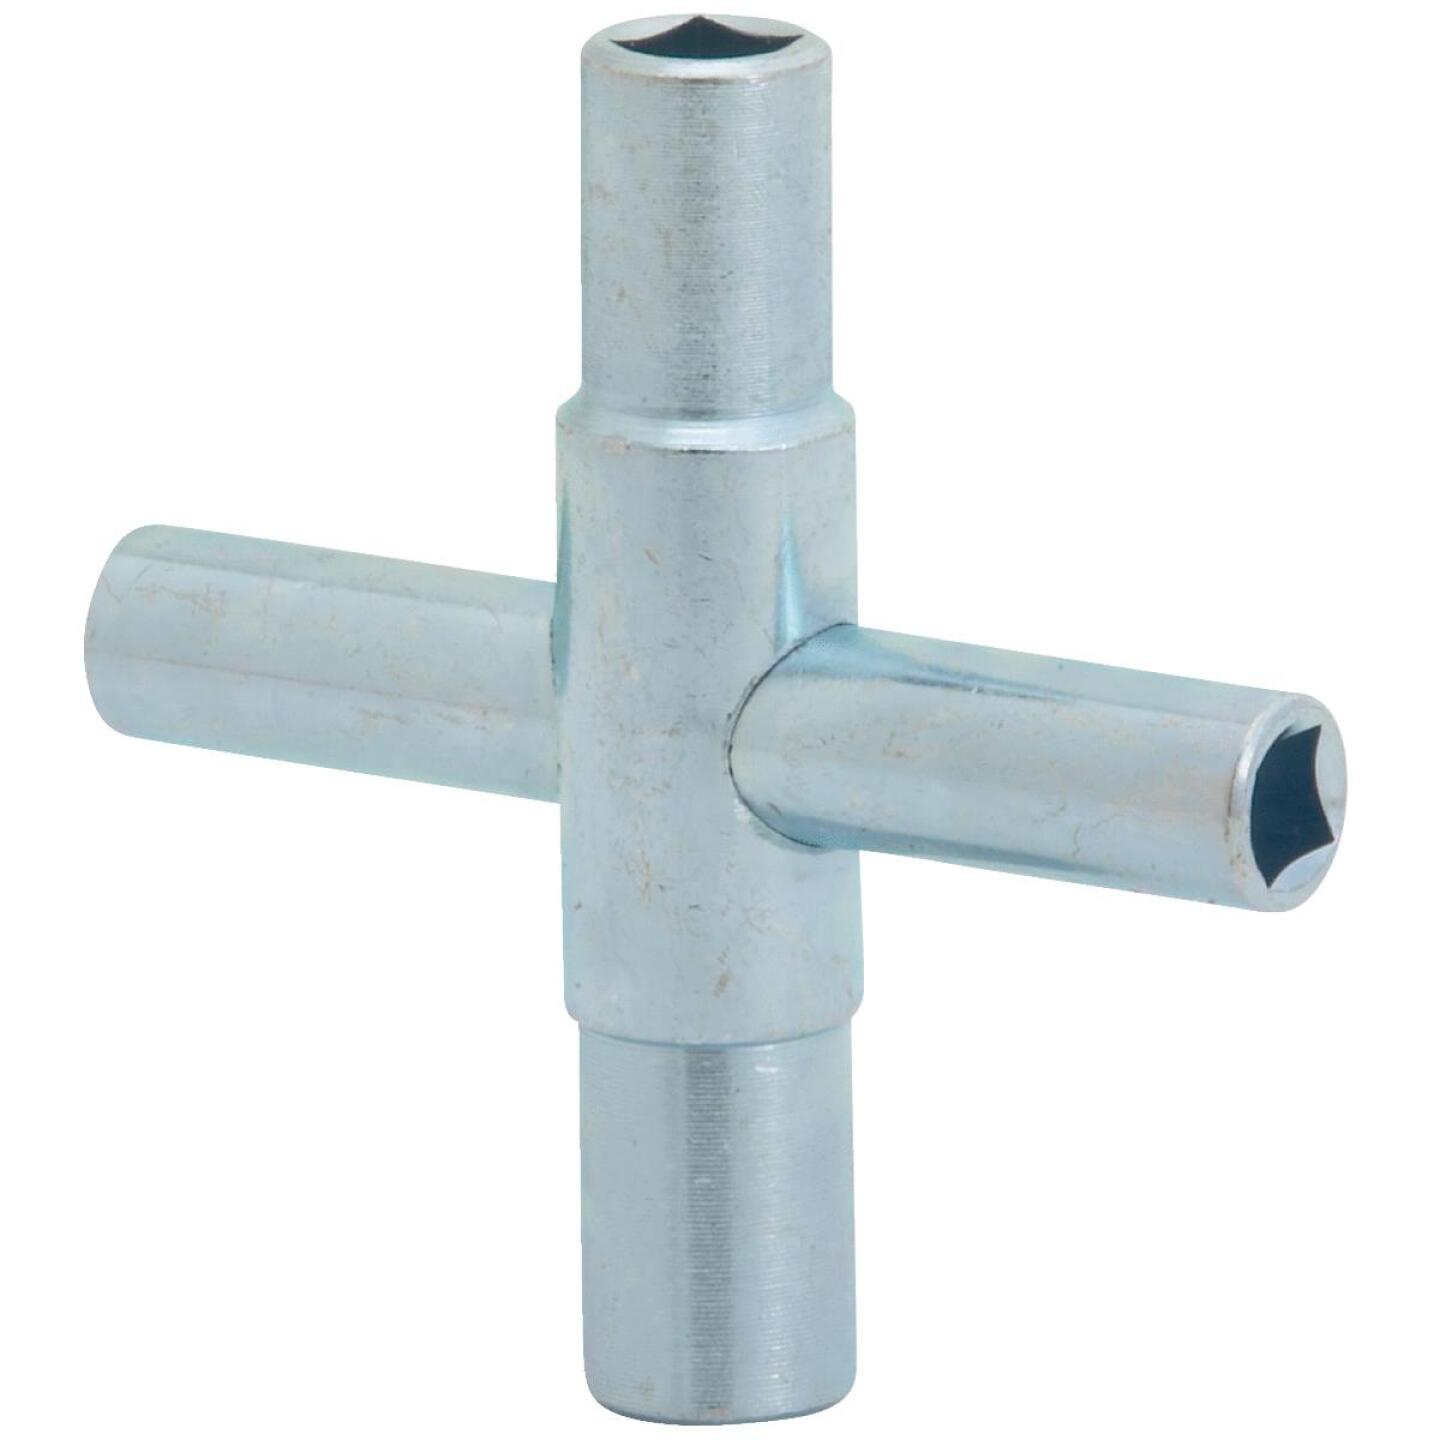 Jones Stephens 4-Way Lawn Faucet Key for 1/4, 9/32, 5/16, 11/32 In. Stems Image 1